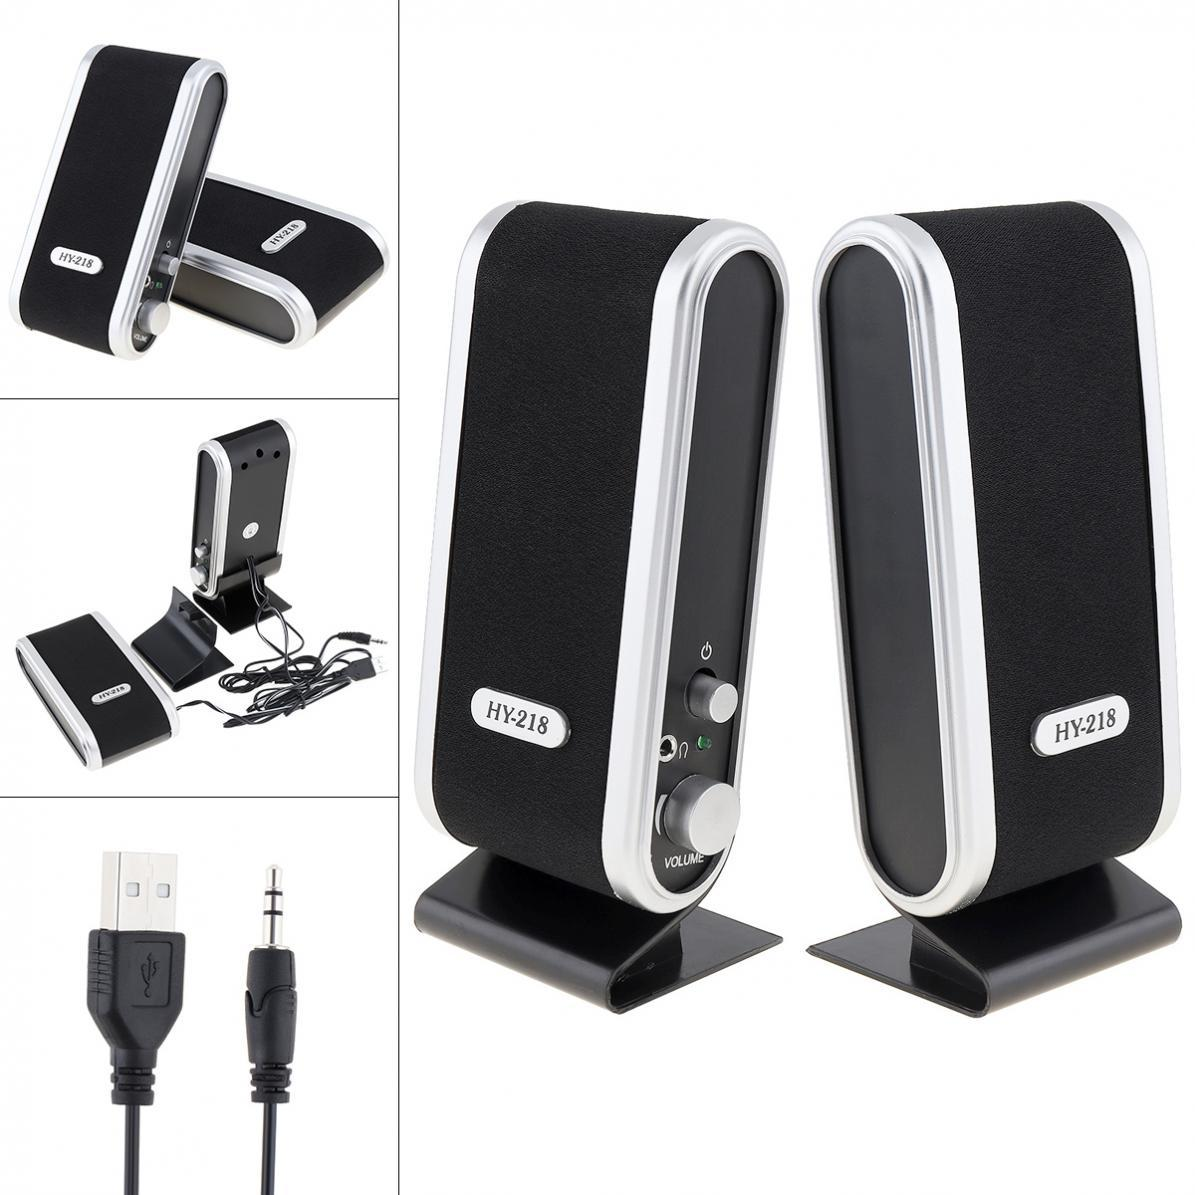 Usb2.0 6w Wired Usb Power Speakers Stereo 3.5mm Audio Jack For Pc Laptop Computer Mac Mini Plastic Headphones Microphone 1